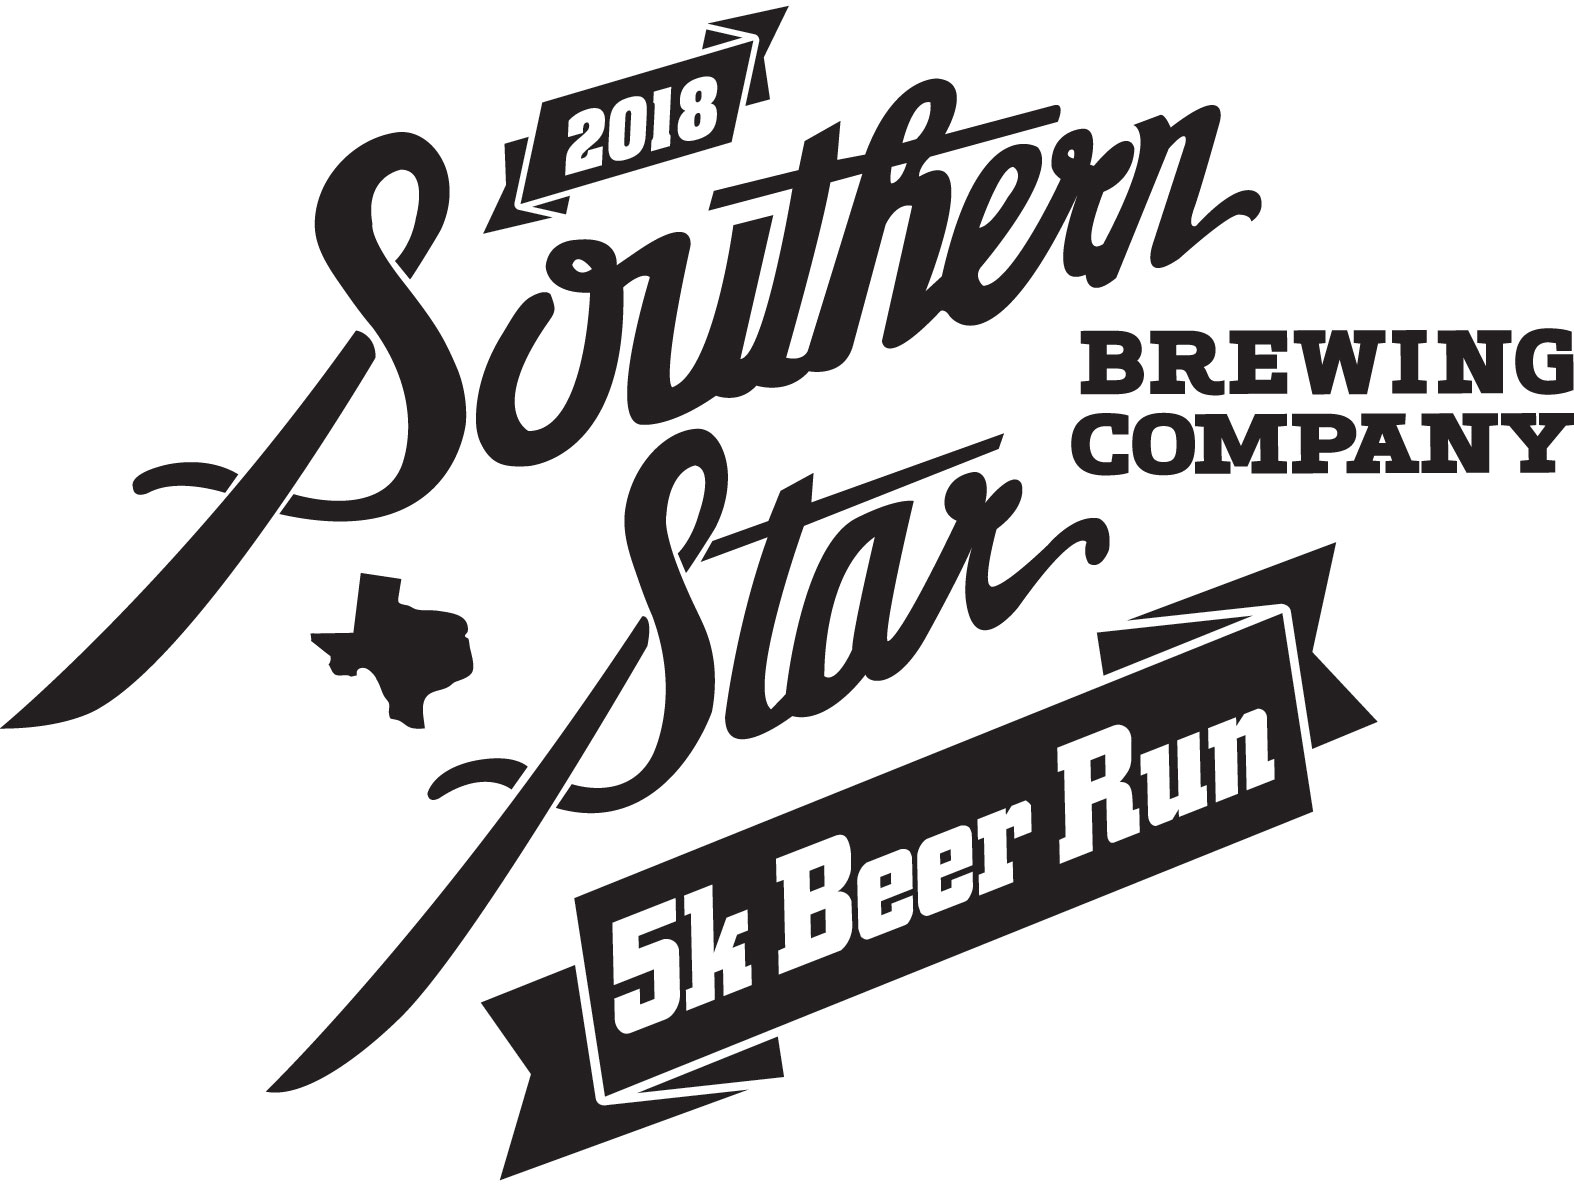 Southern Star Brewing Co 5k Walkers Welcome